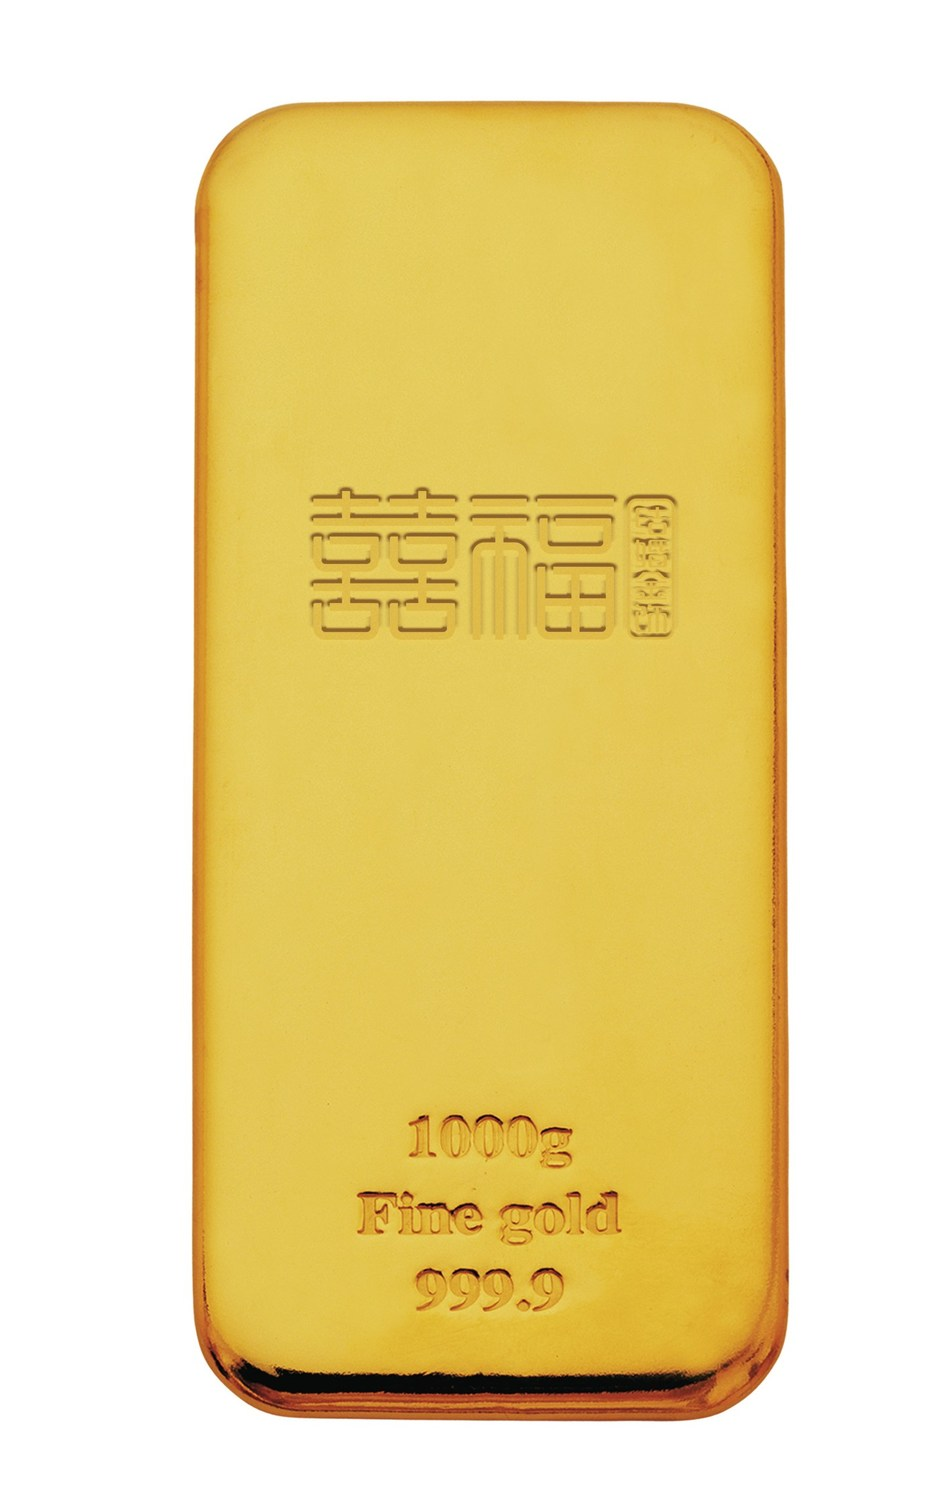 'Xifu' Grand prize is a 1KG pure gold bar